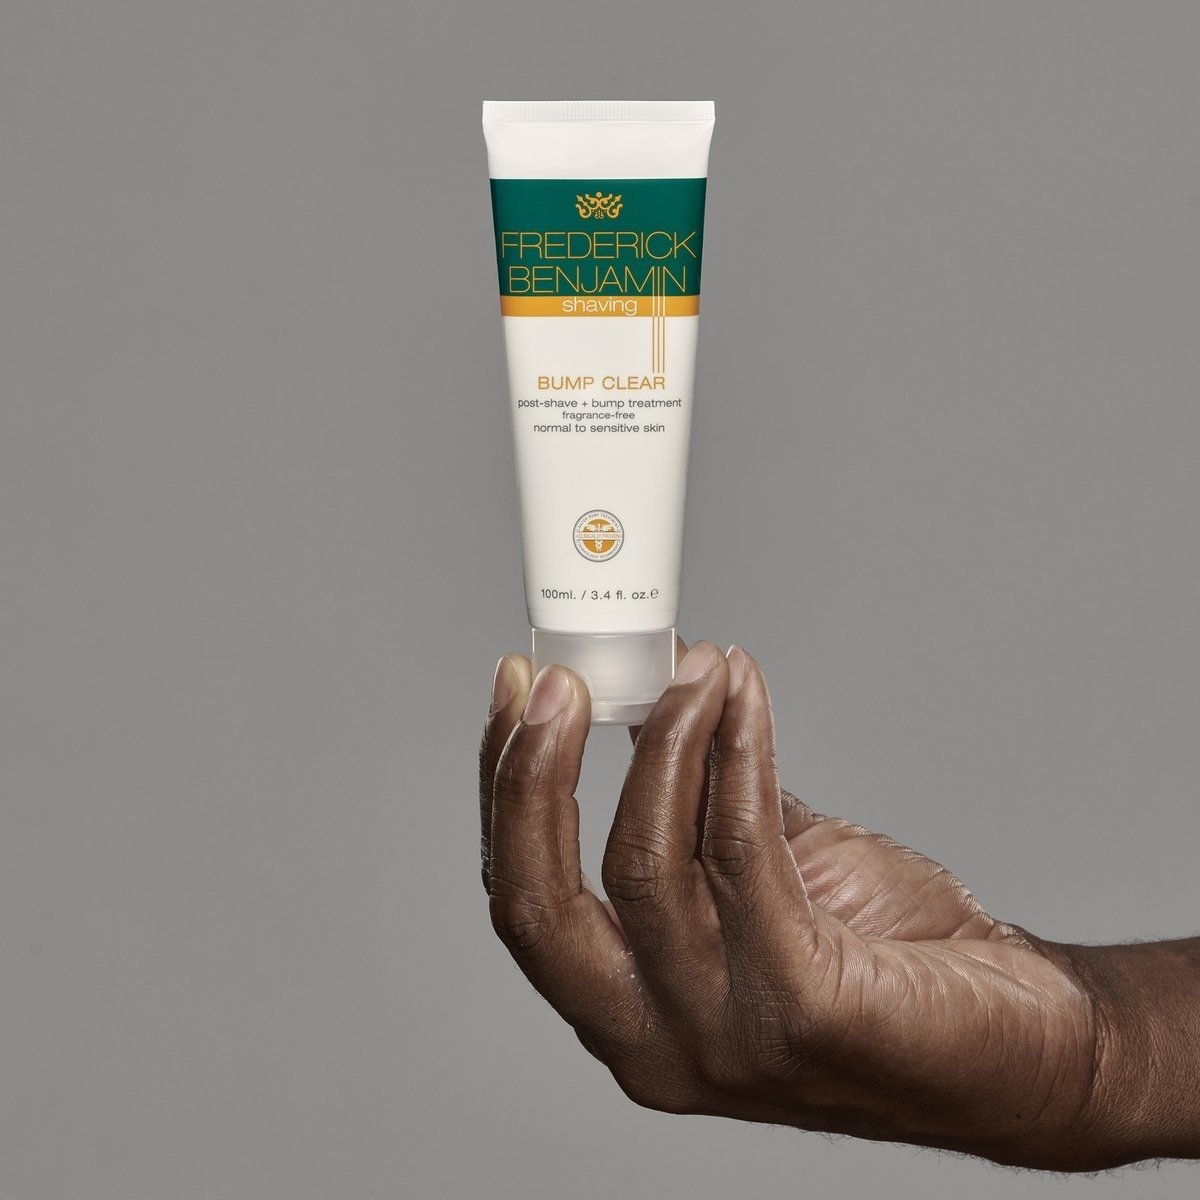 Model holding bottle of Frederick Benjamin Bump Clear post-shave cream